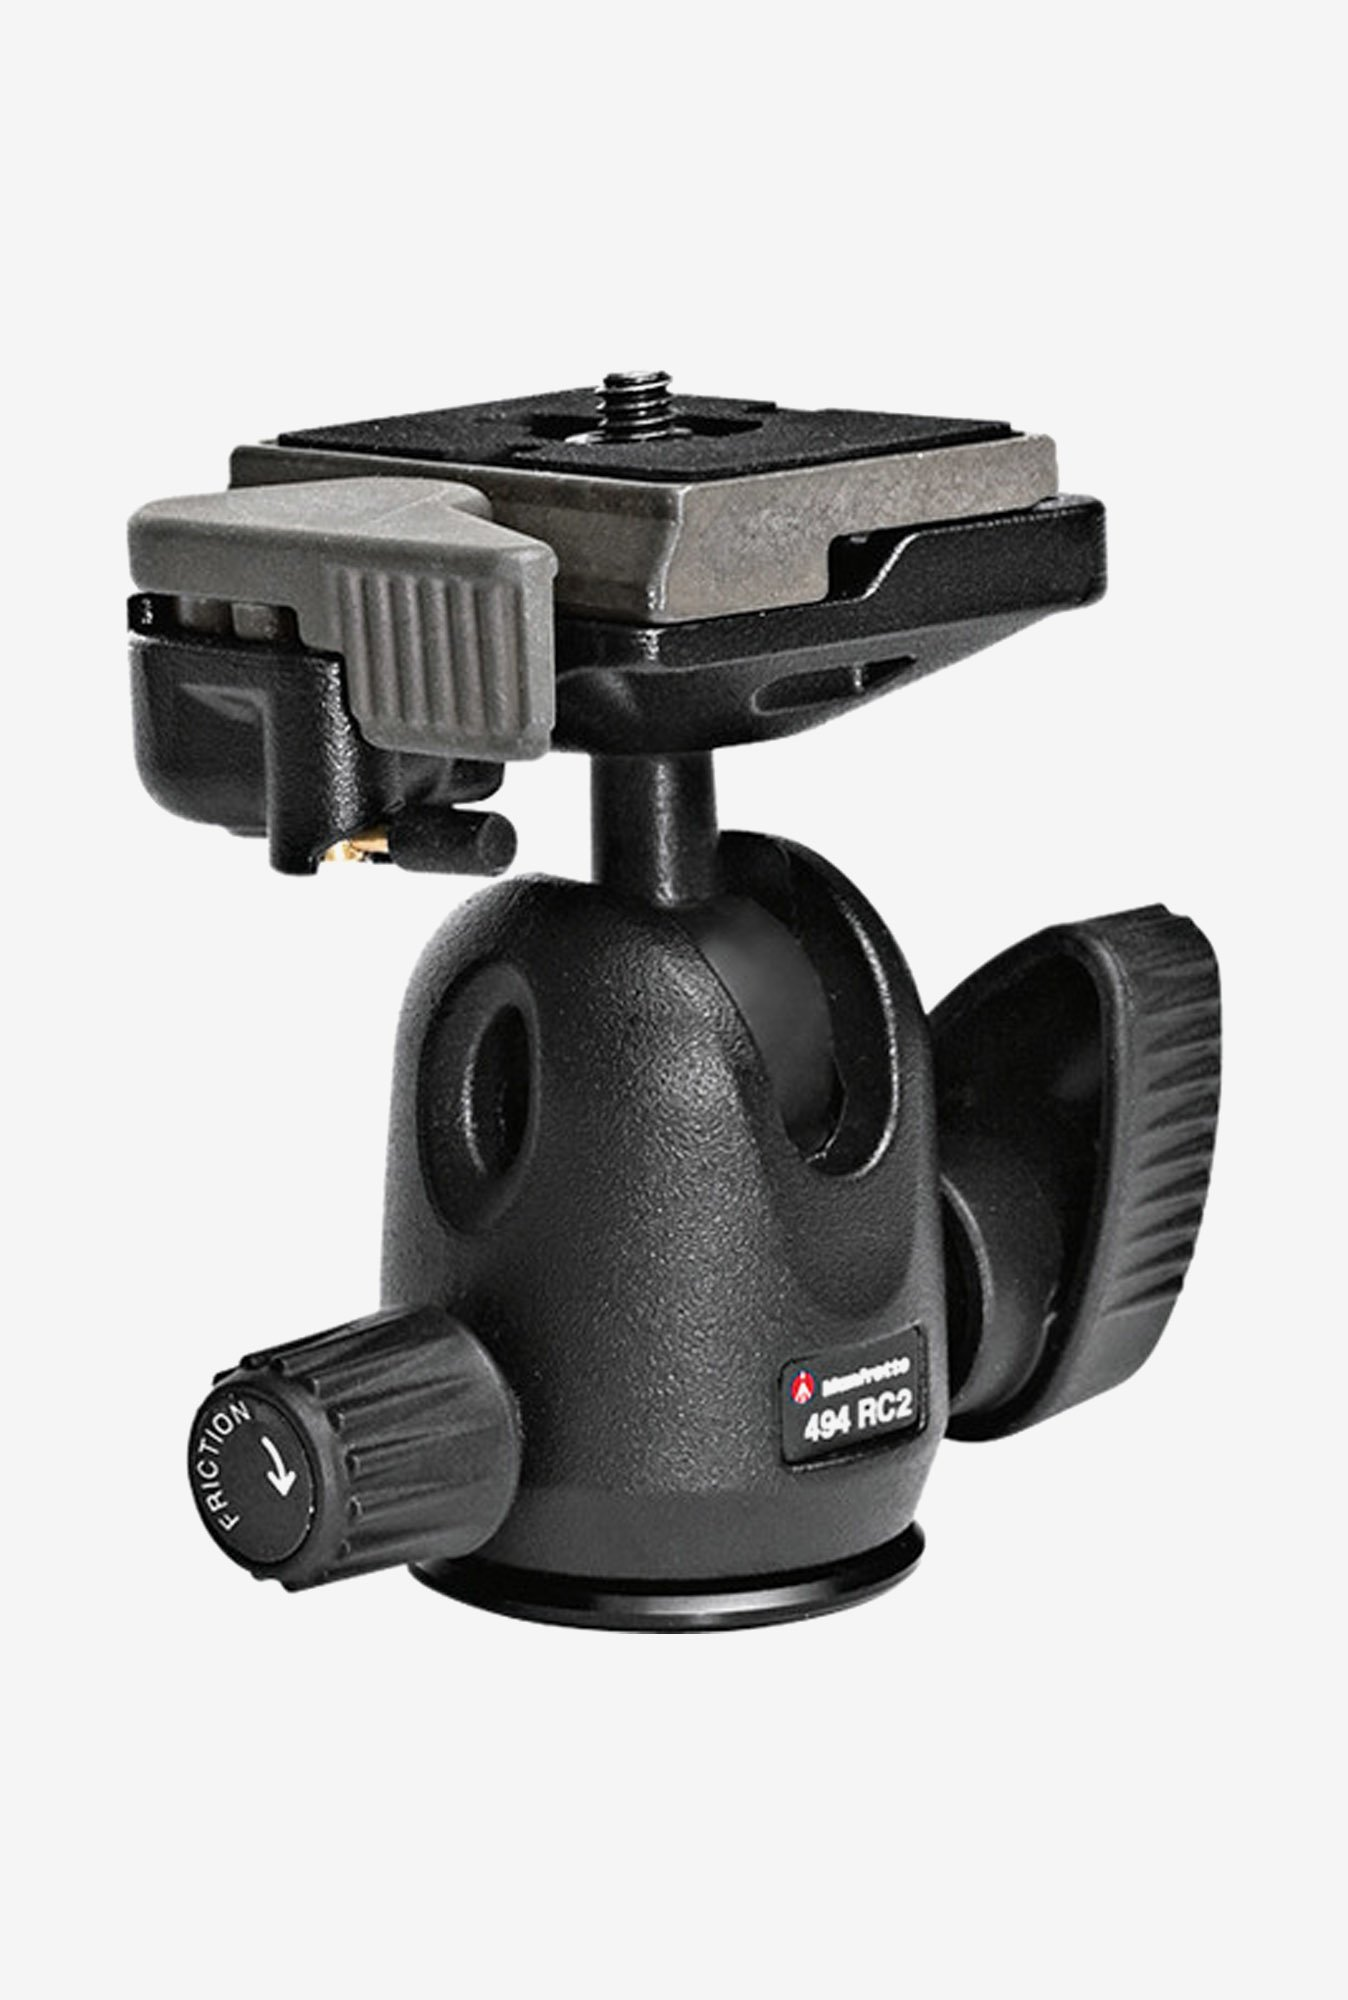 Manfrotto 494RC2 Tripod Ball Head Black